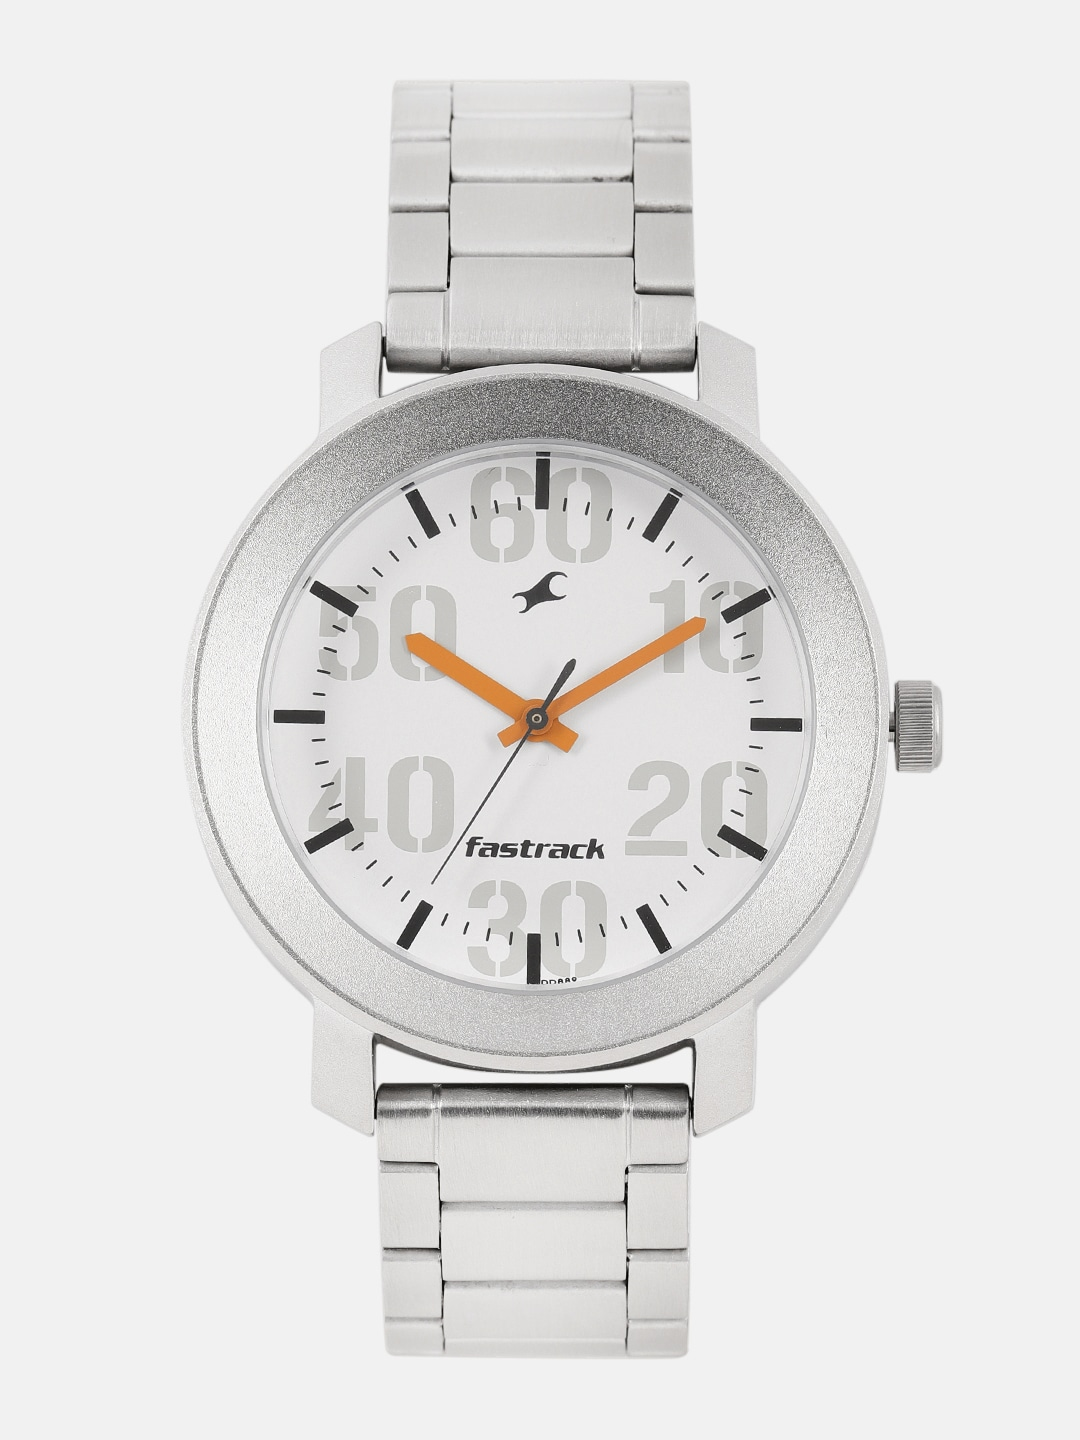 d5c45fec1 Titan Fastrack Watches - Buy Titan Fastrack Watches online in India